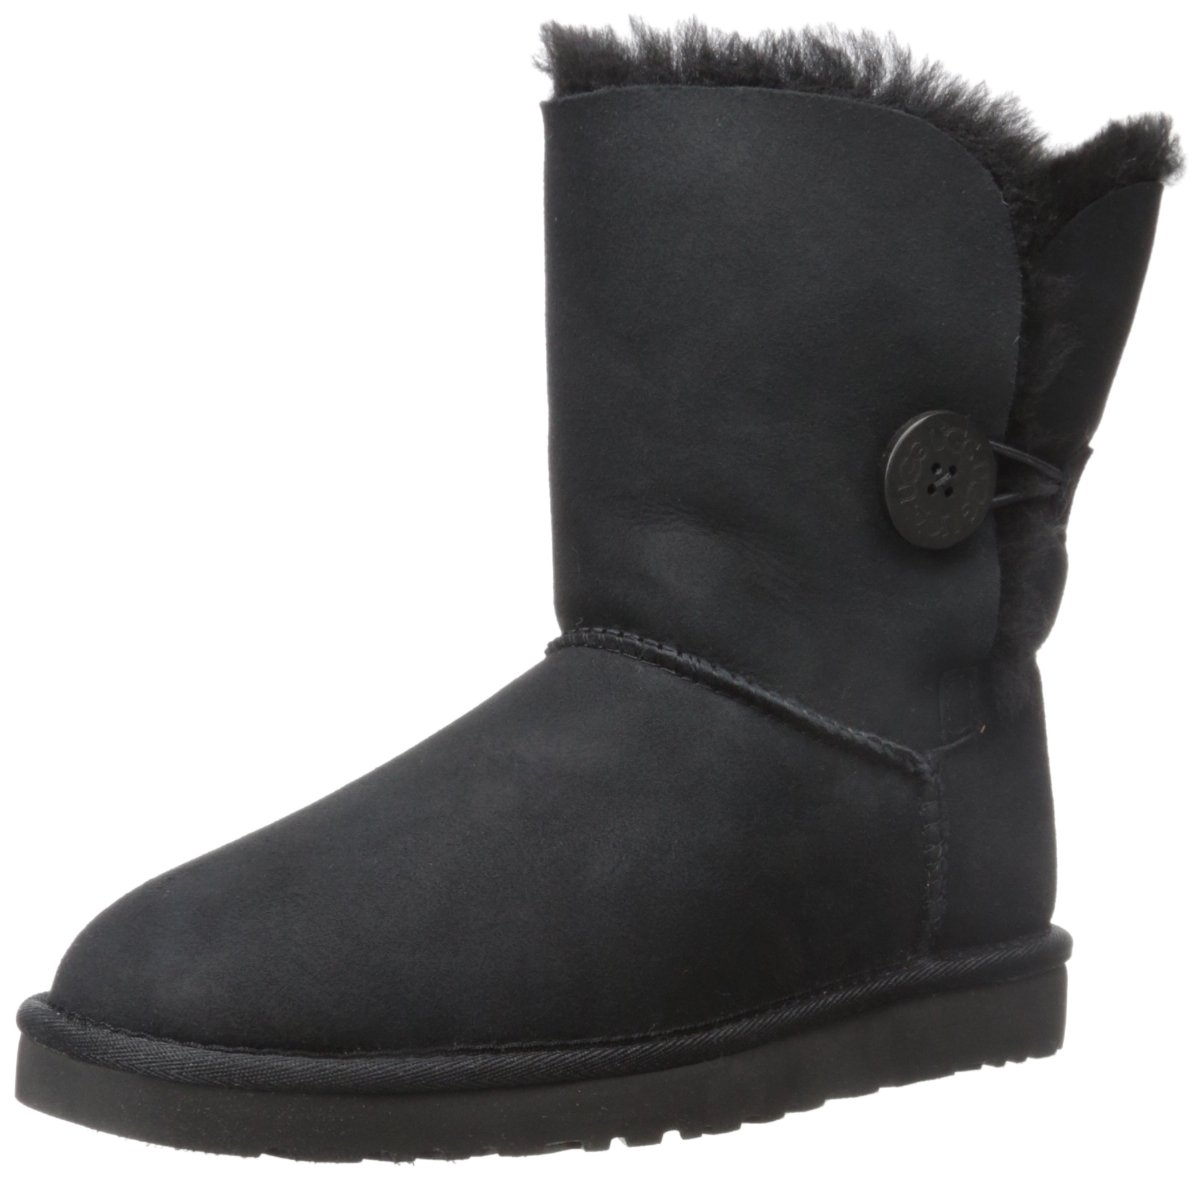 UGG Australia Women's Bailey Button Black - 5 B(M) US by UGG